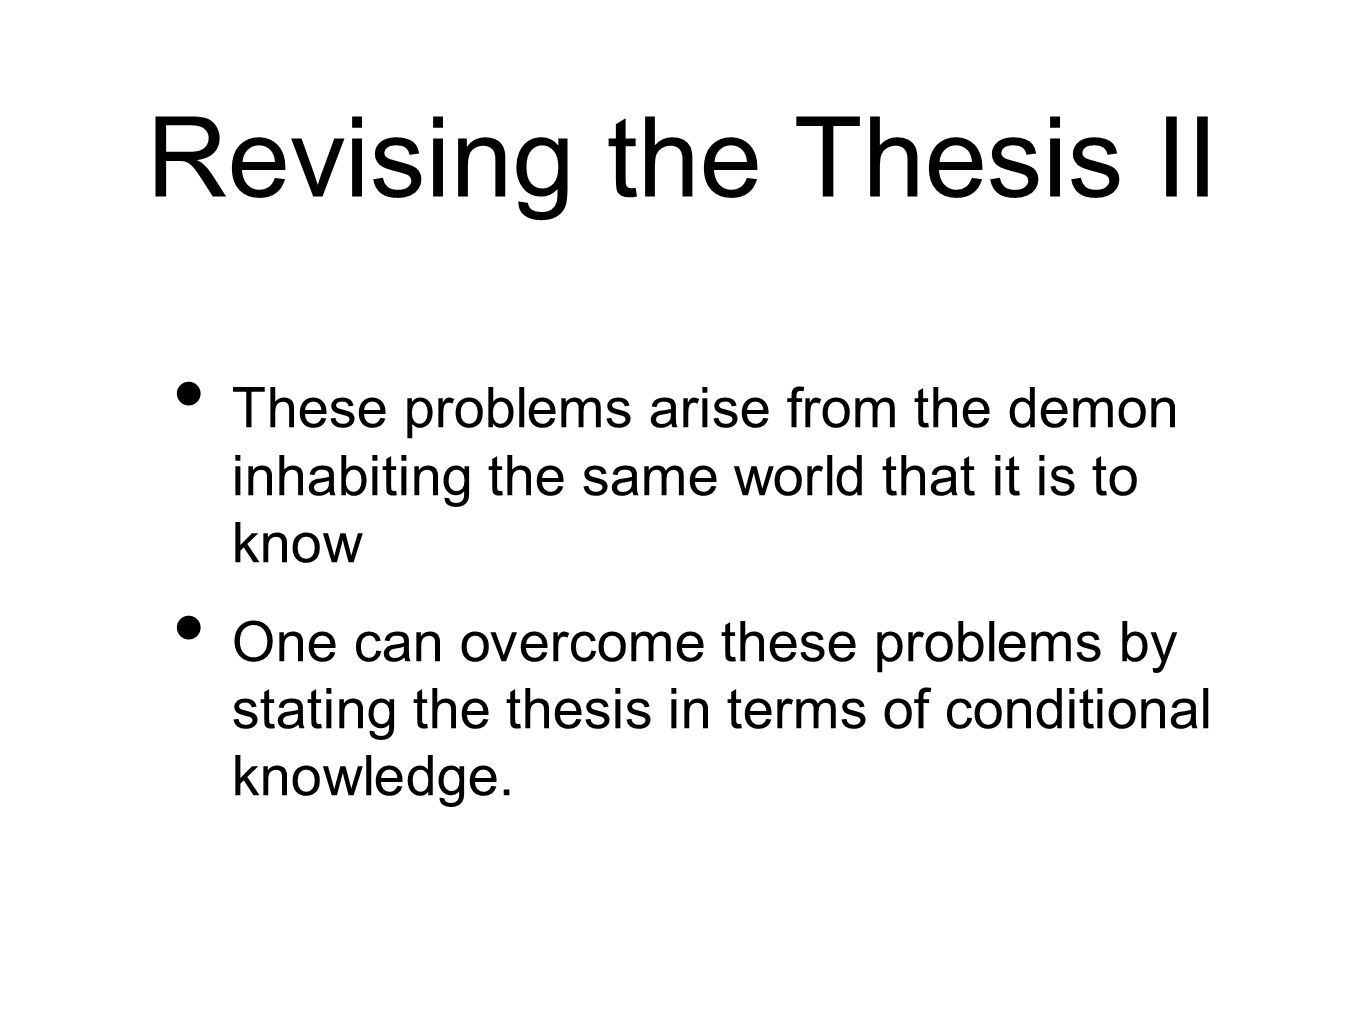 Revising the Thesis II These problems arise from the demon inhabiting the same world that it is to know.